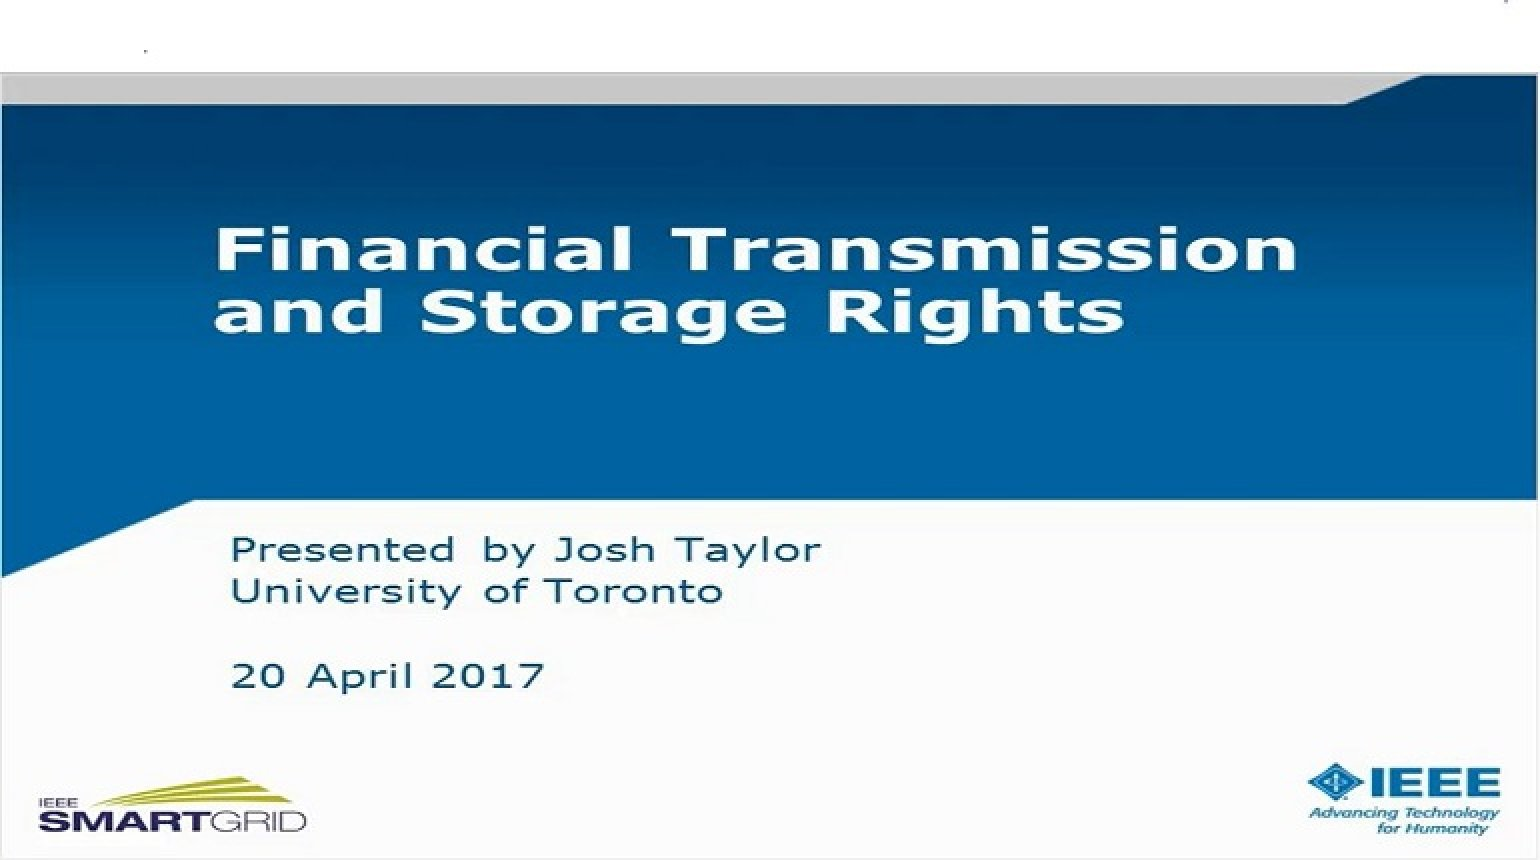 Financial Transmission and Storage Rights presented by Josh Taylor